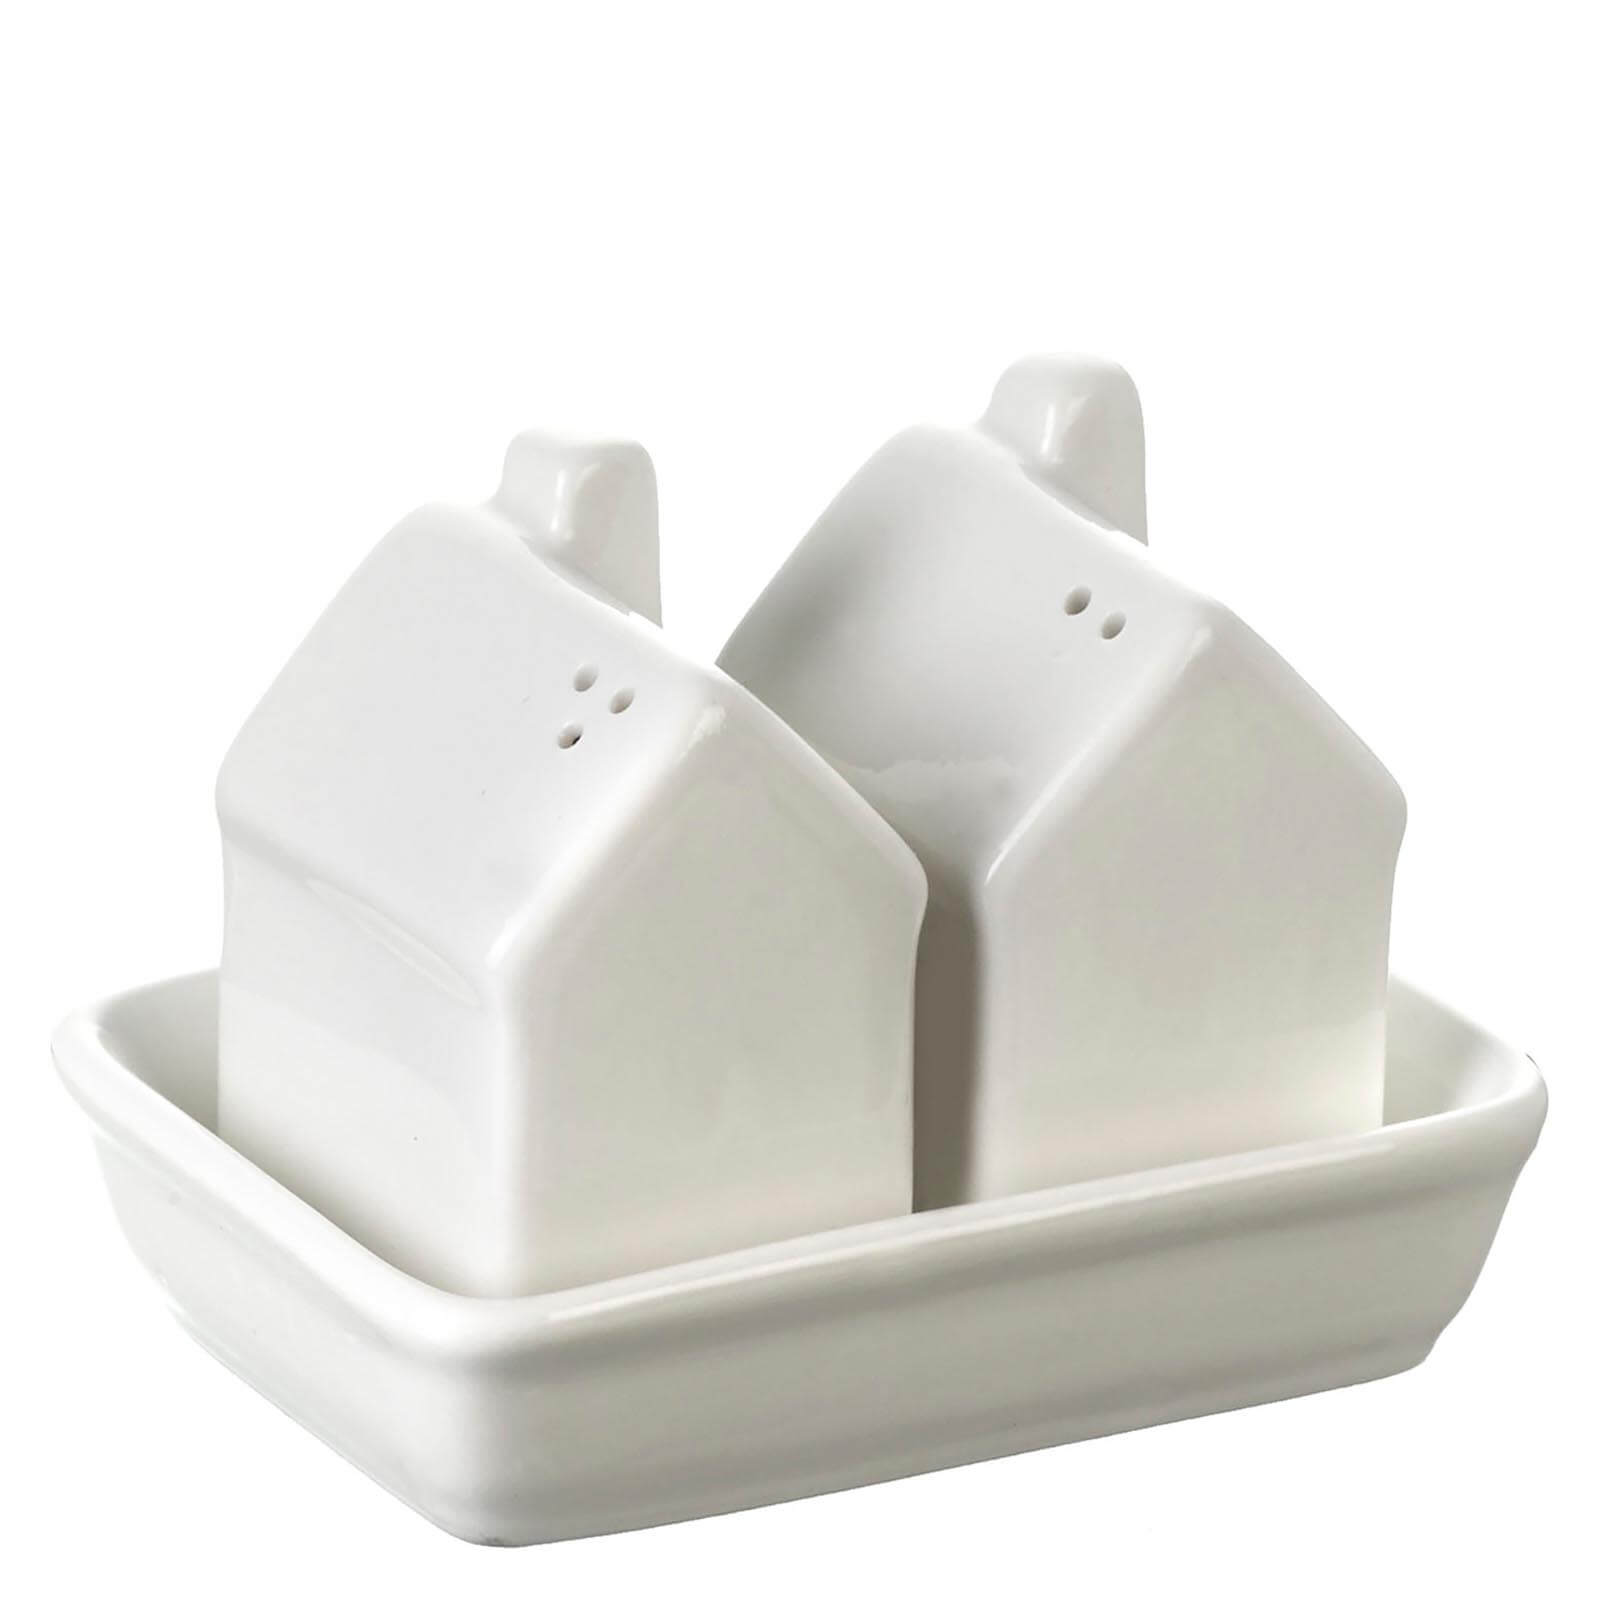 Parlane Ceramic House Salt & Pepper Set - Cream (6 x 4.5cm)